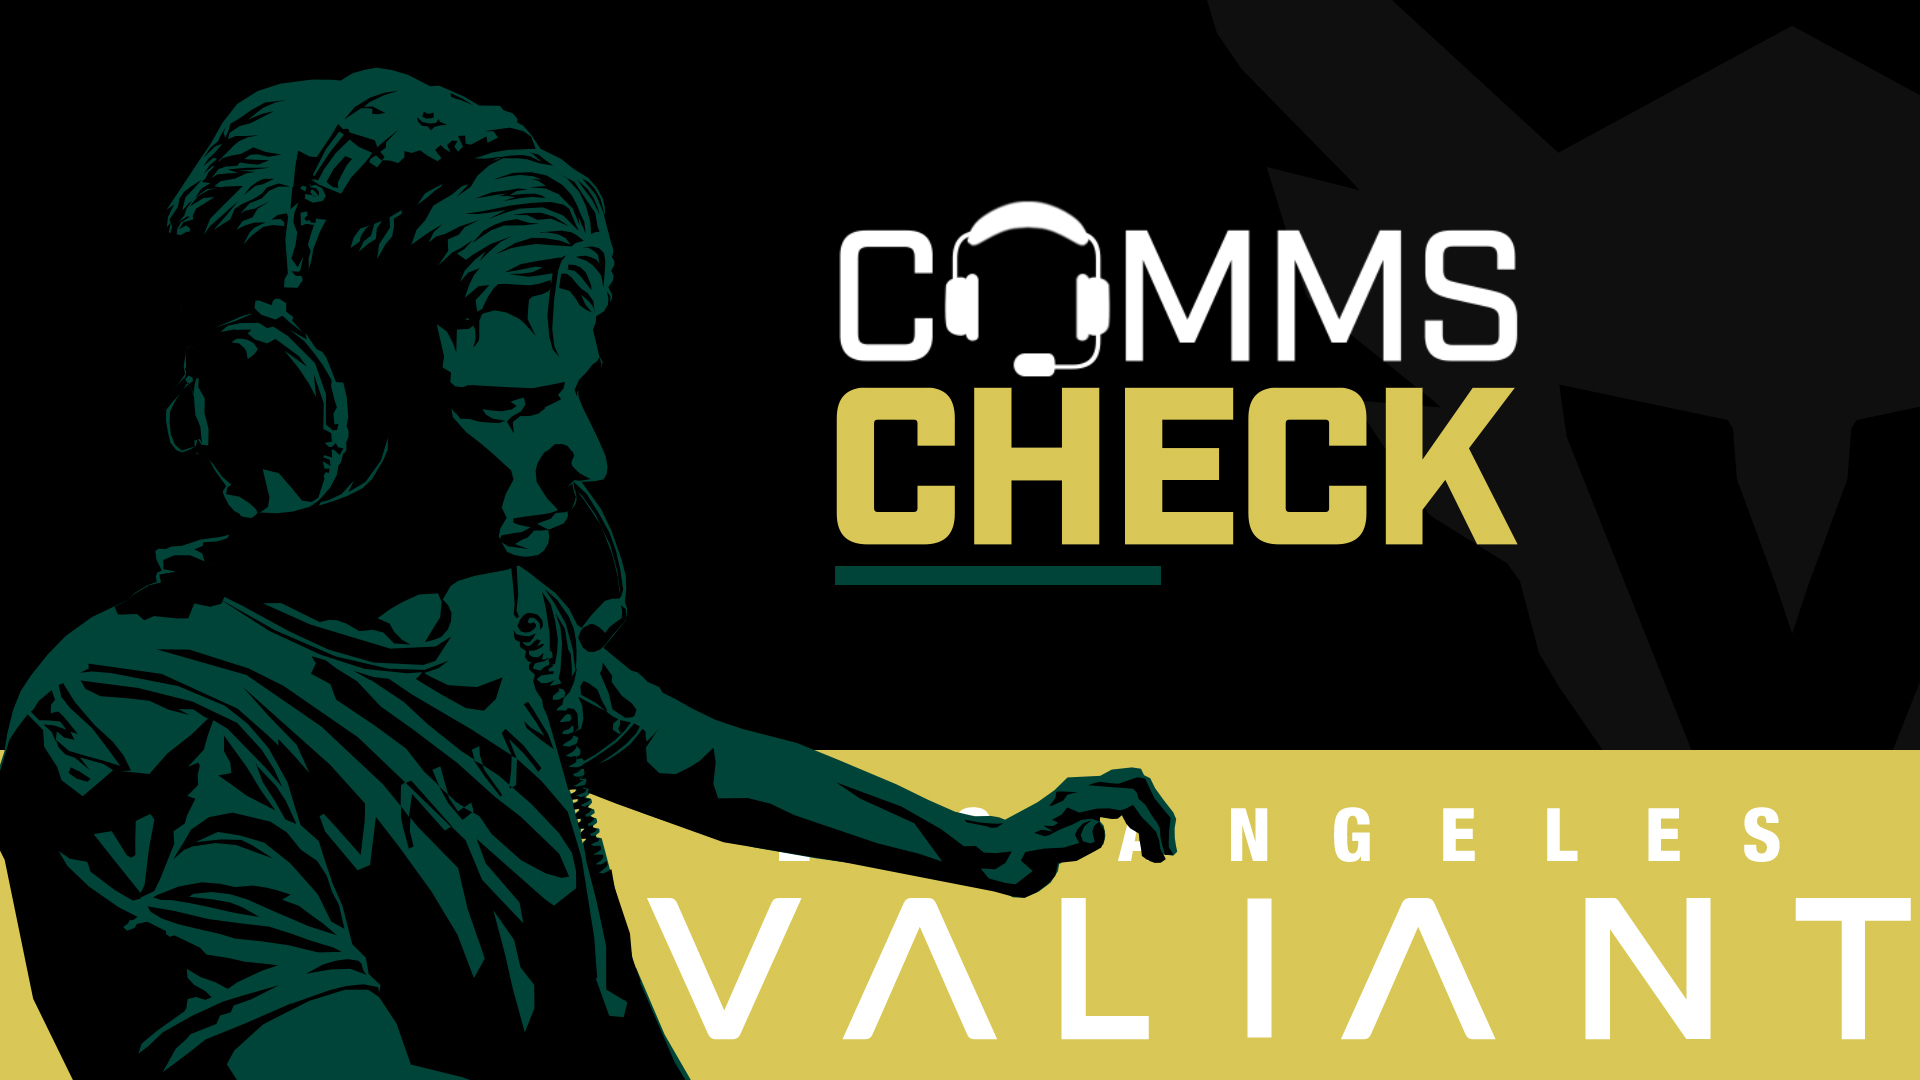 Watchpoint Comms Check – Los Angeles Valiant